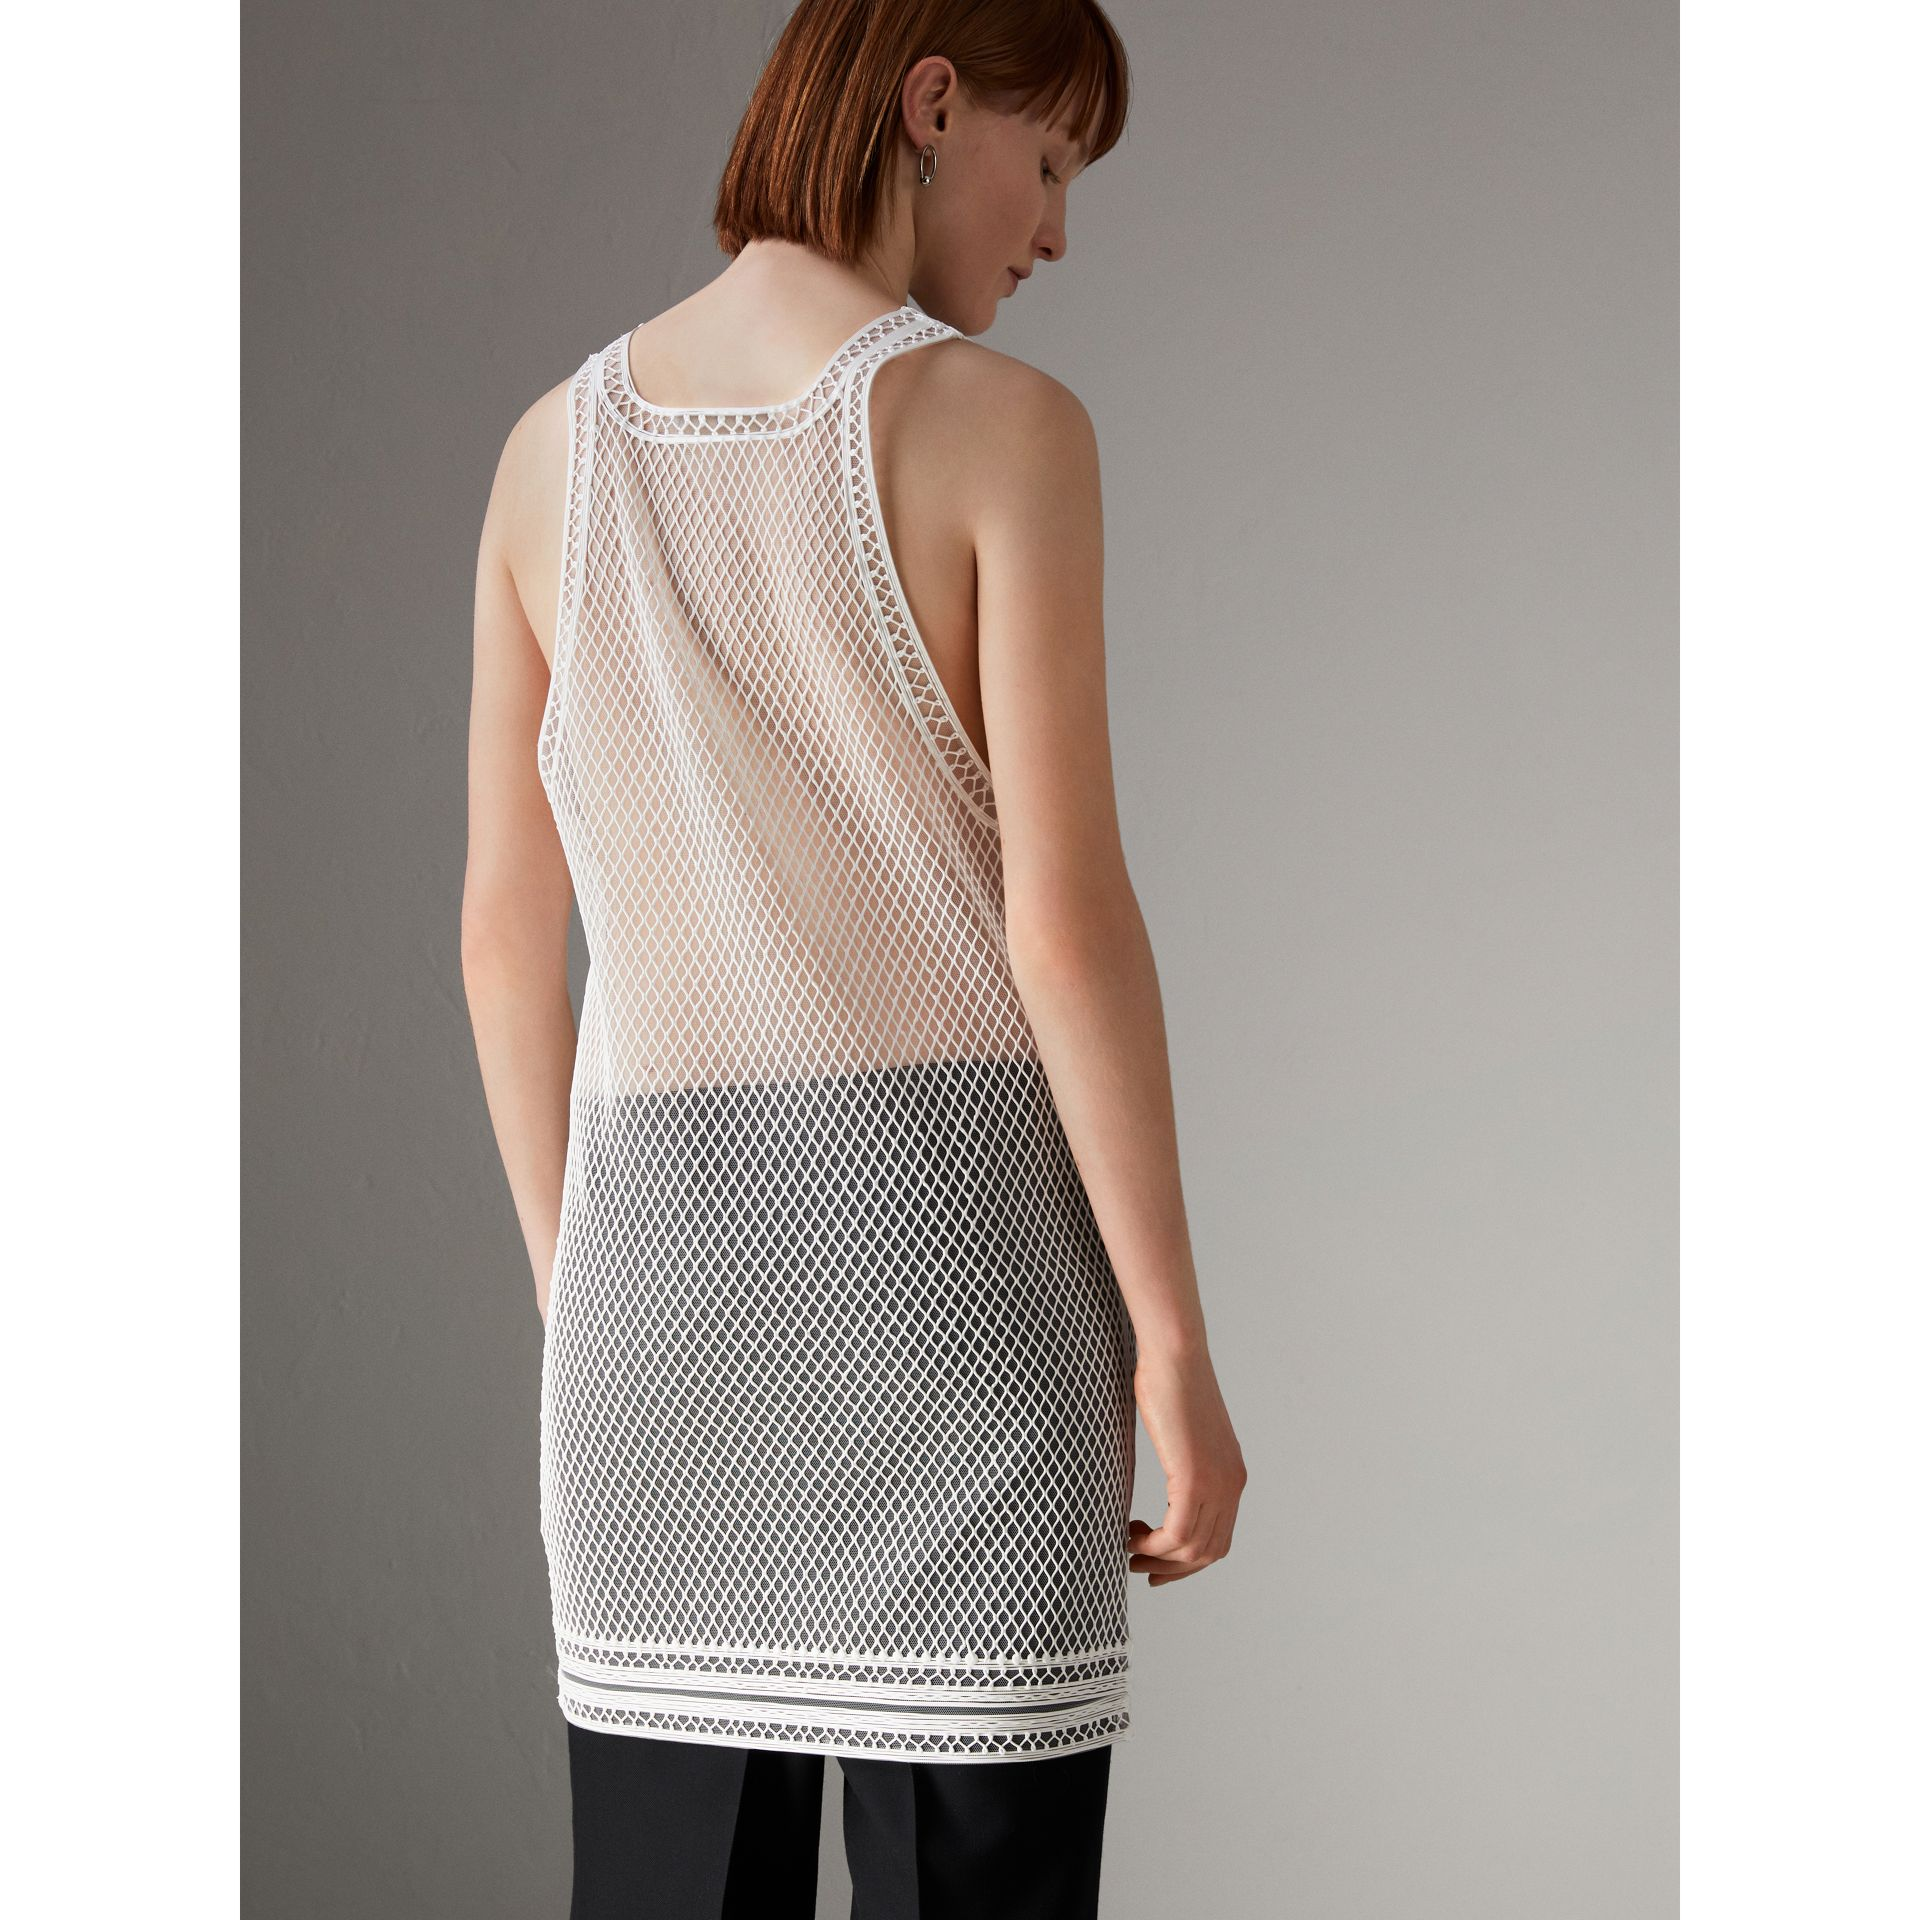 Silicone Lace Vest in White - Women | Burberry United States - gallery image 2